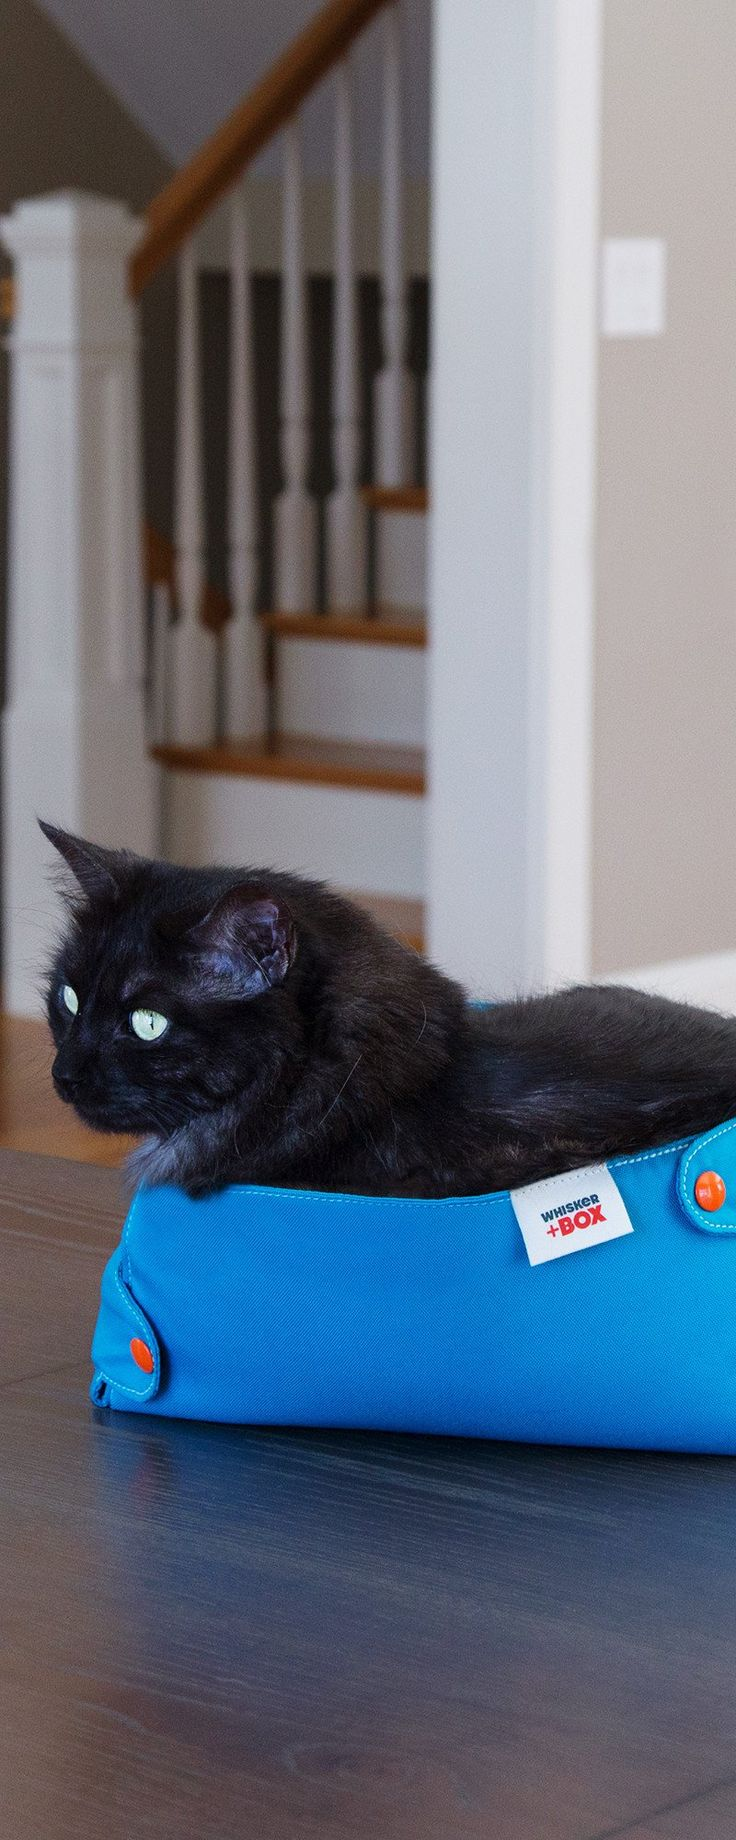 This cute box is like a collapsible cat bed, giving your kitty the compression therapy they love in a design that far outwits the tattered shoebox. It's designed to fold and store, and the durable nylon is extra easy to clean. Cats love squeezing into these, and you'll love supporting something Made in the USA.